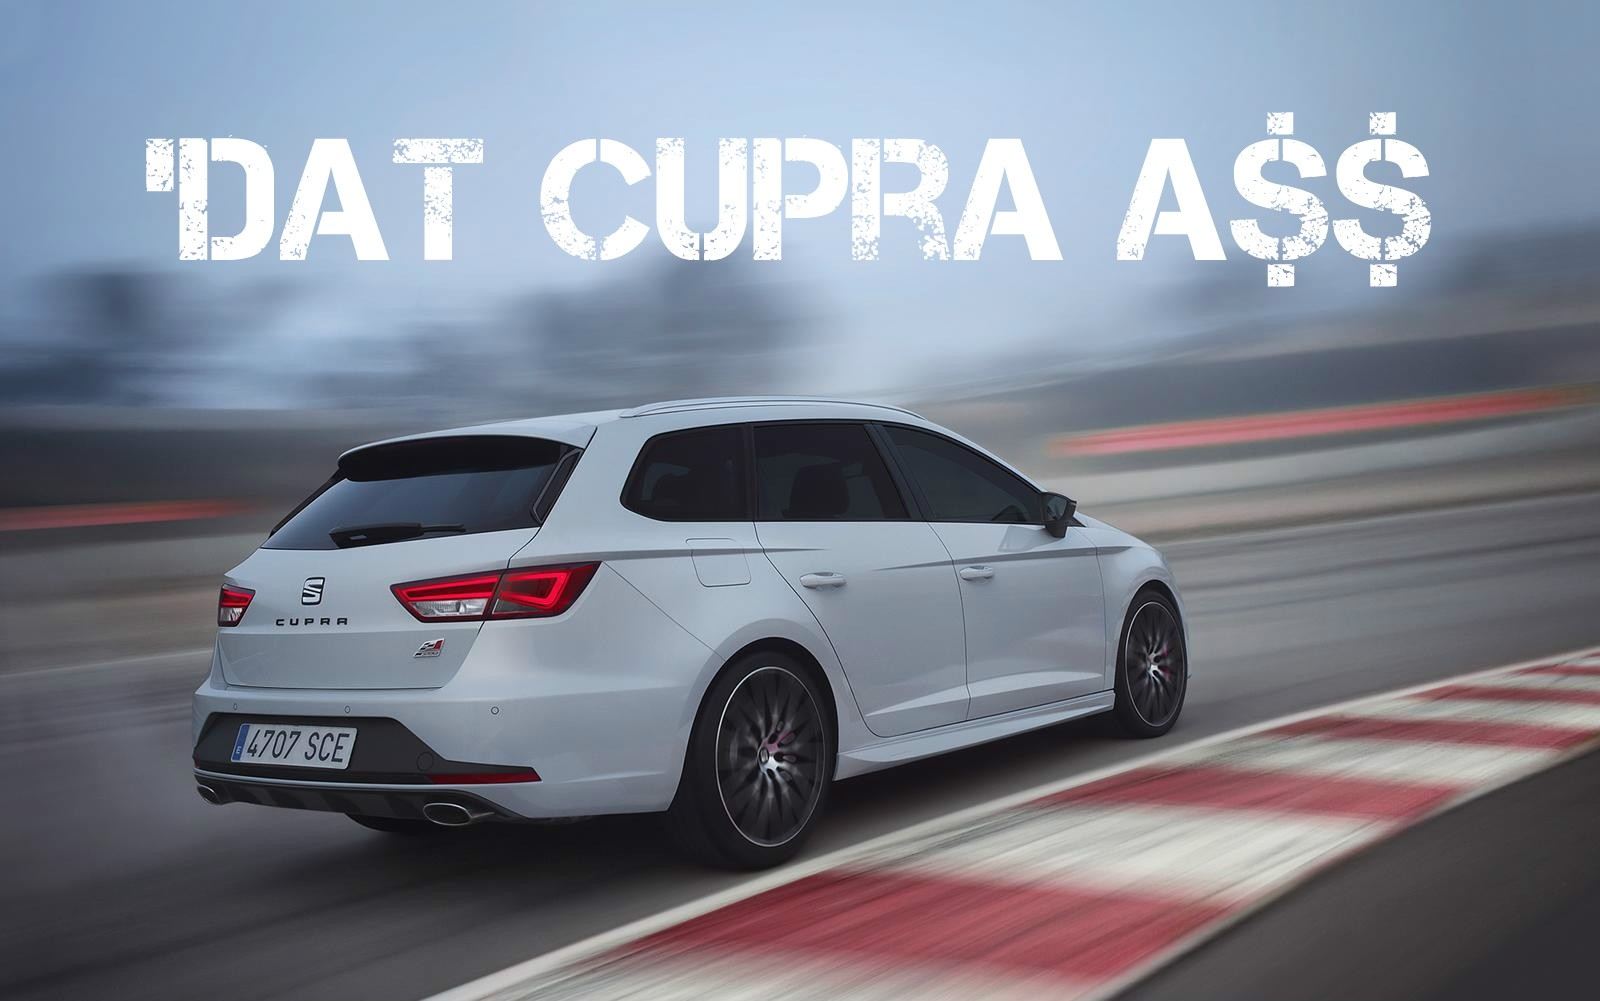 Seat Leon St Cupra Gets Remus Cat Back Exhaust System 107768 on eas has fun with a bmw f80 m3 fitted